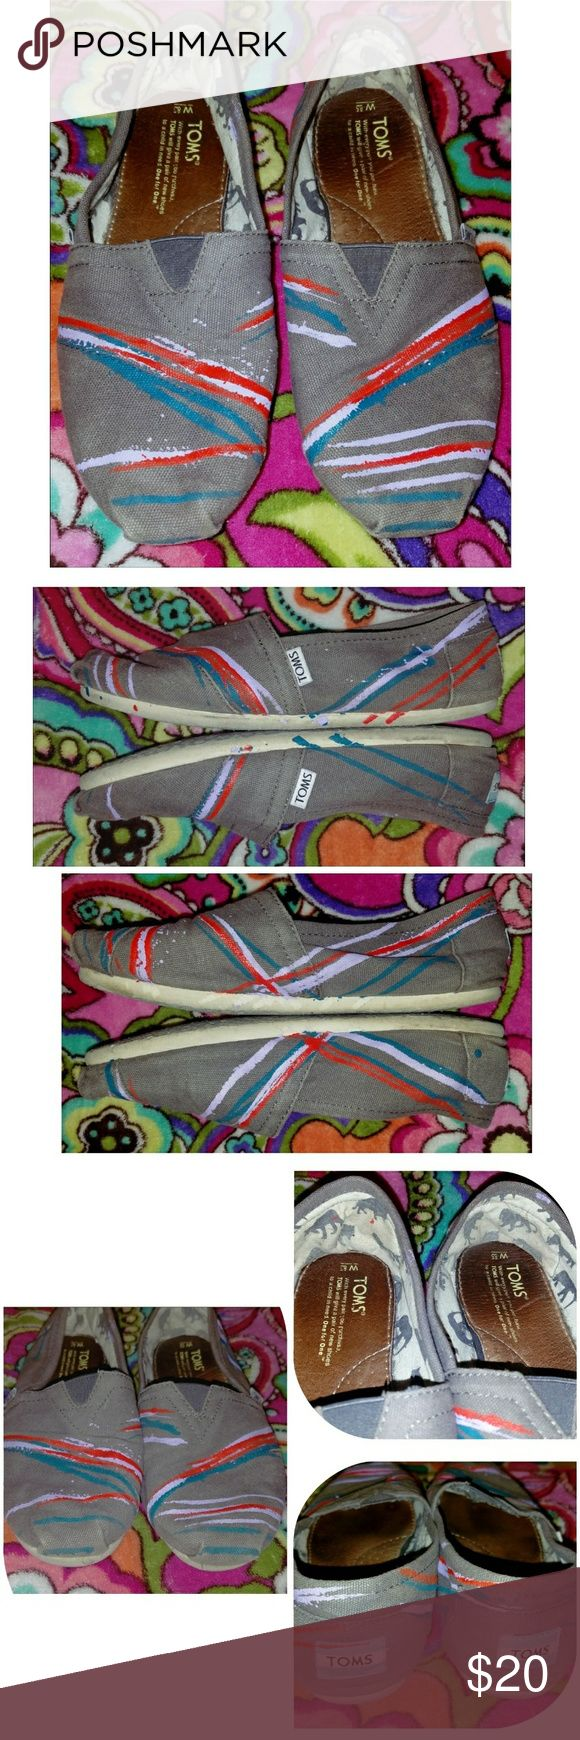 """TOMS Ltd Edition Gray Handpainted Paint Splatter ~ TOM'S Slip on Flat Classic Canvas Shoes ~ Women's Size 8.5 ~  These cute & comfy shoes are Gray with a """"Paint Splatter"""" Striped design painted on in purple, blue & red (Hand Painted by Artist for TOMS)  Lots of life left in these cute shoes! Canvas is in good condition as well as the paint. Normal wear to insole and outer sole, some discoloration to white around sole & Slight fade at bottom of front toe. No holes/major wear. TOMS Shoes Flats…"""